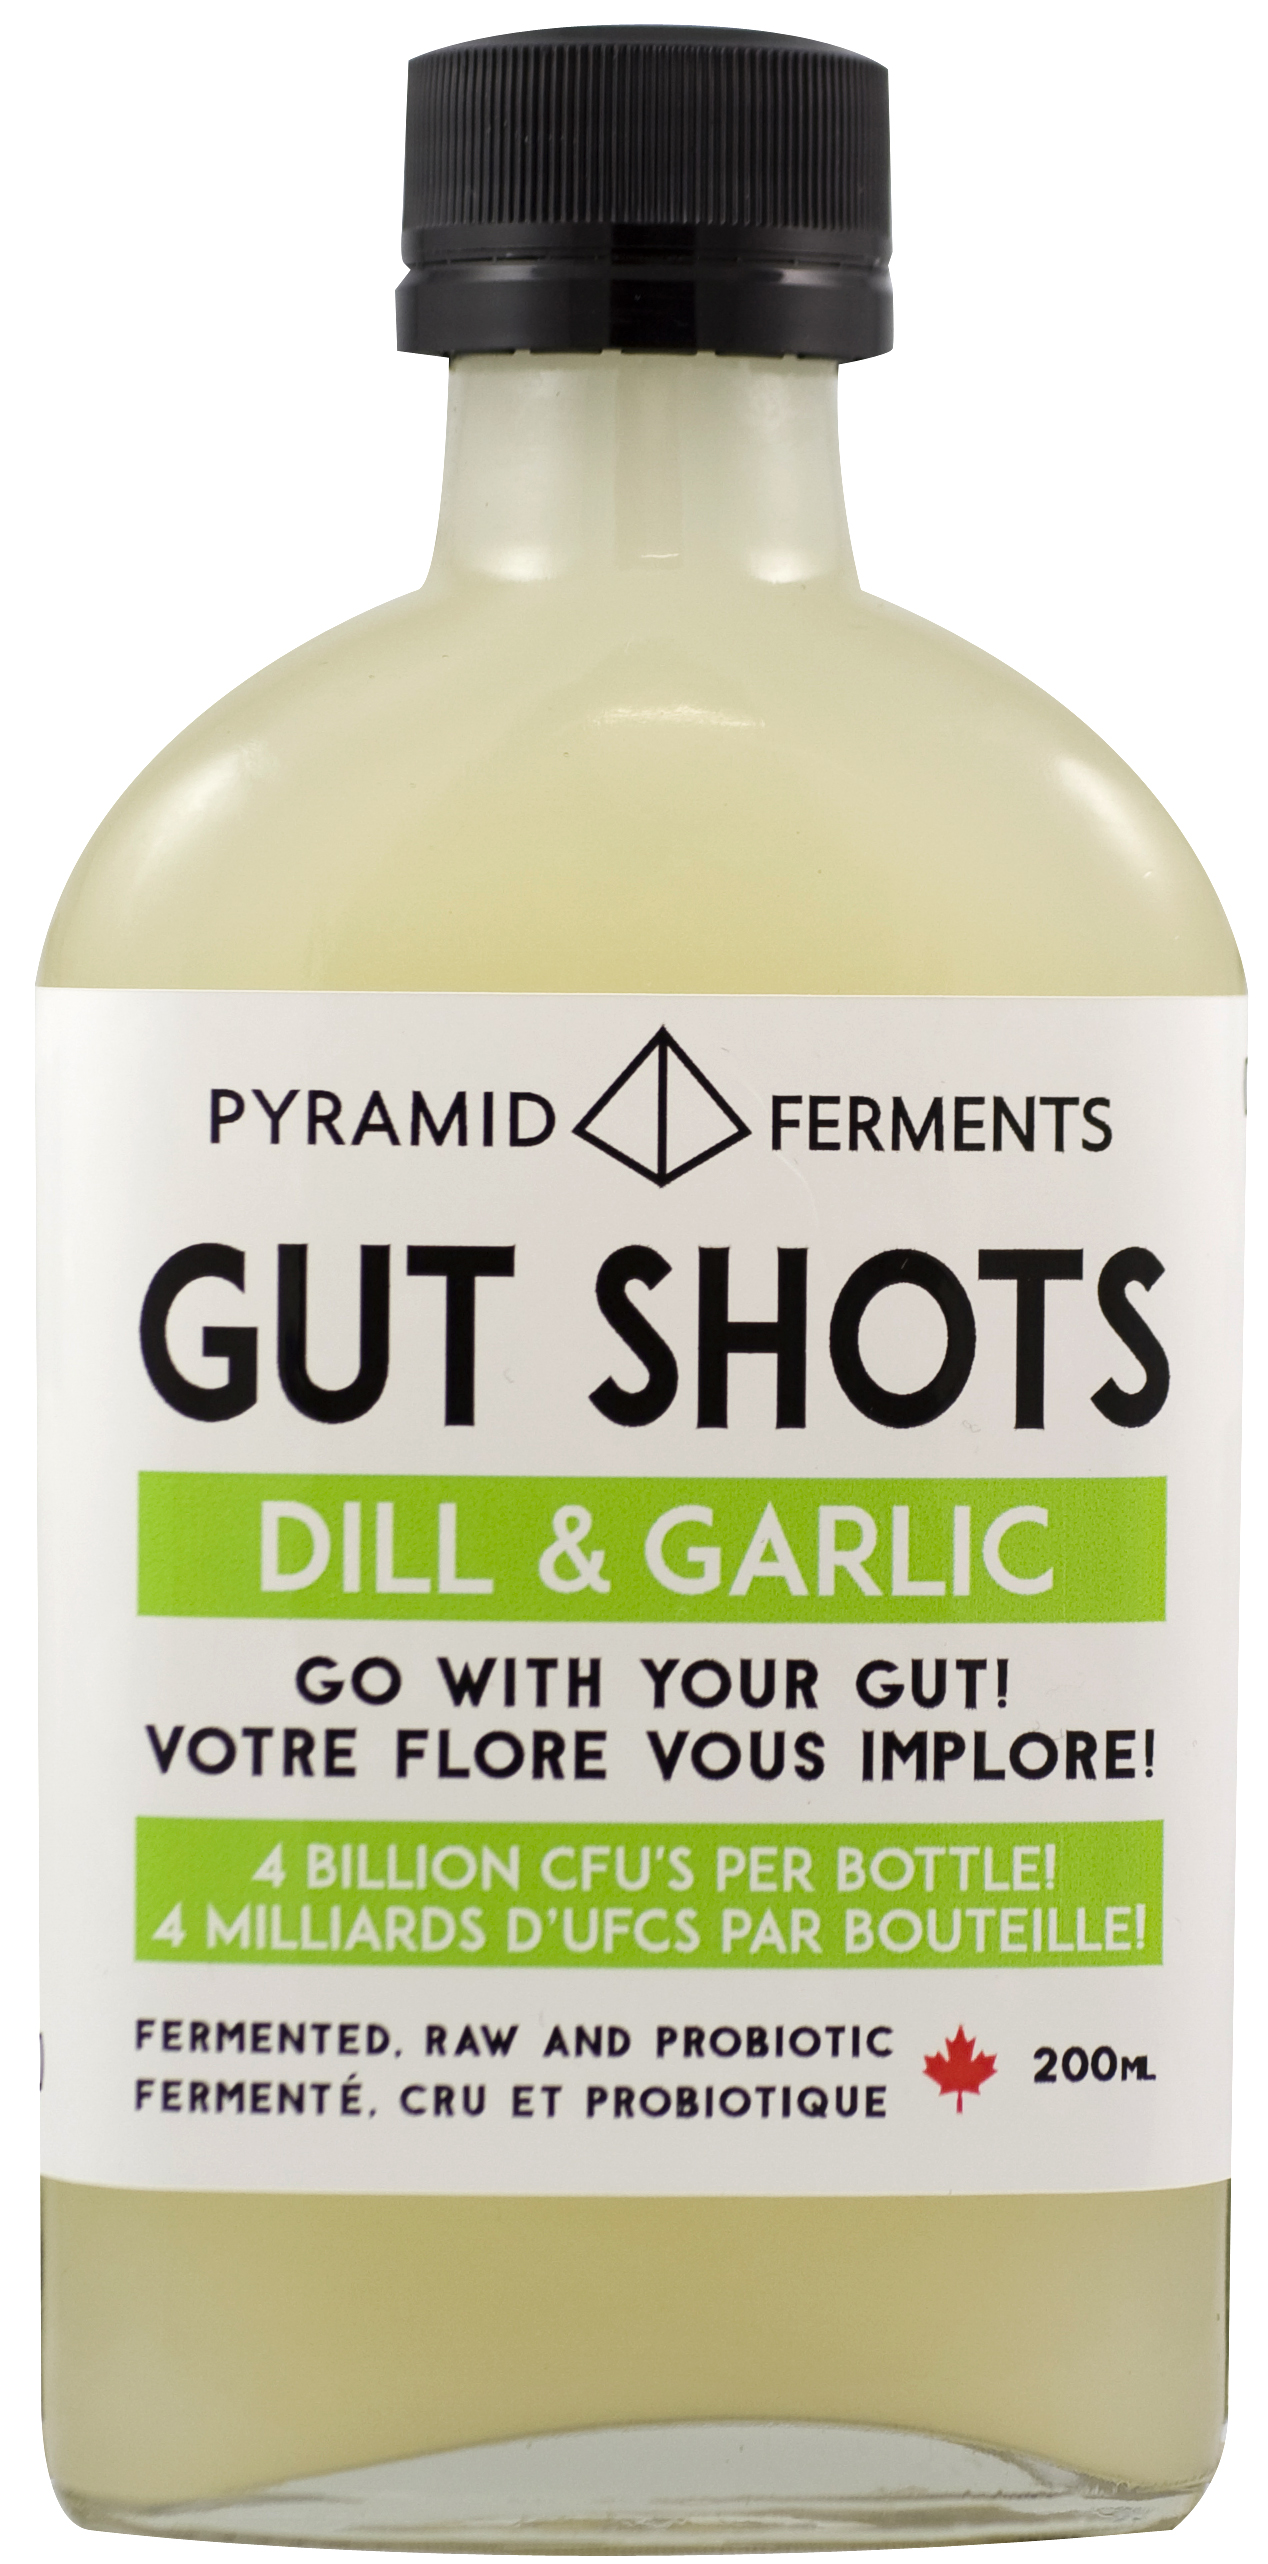 Dill & Garlic Gut Shots